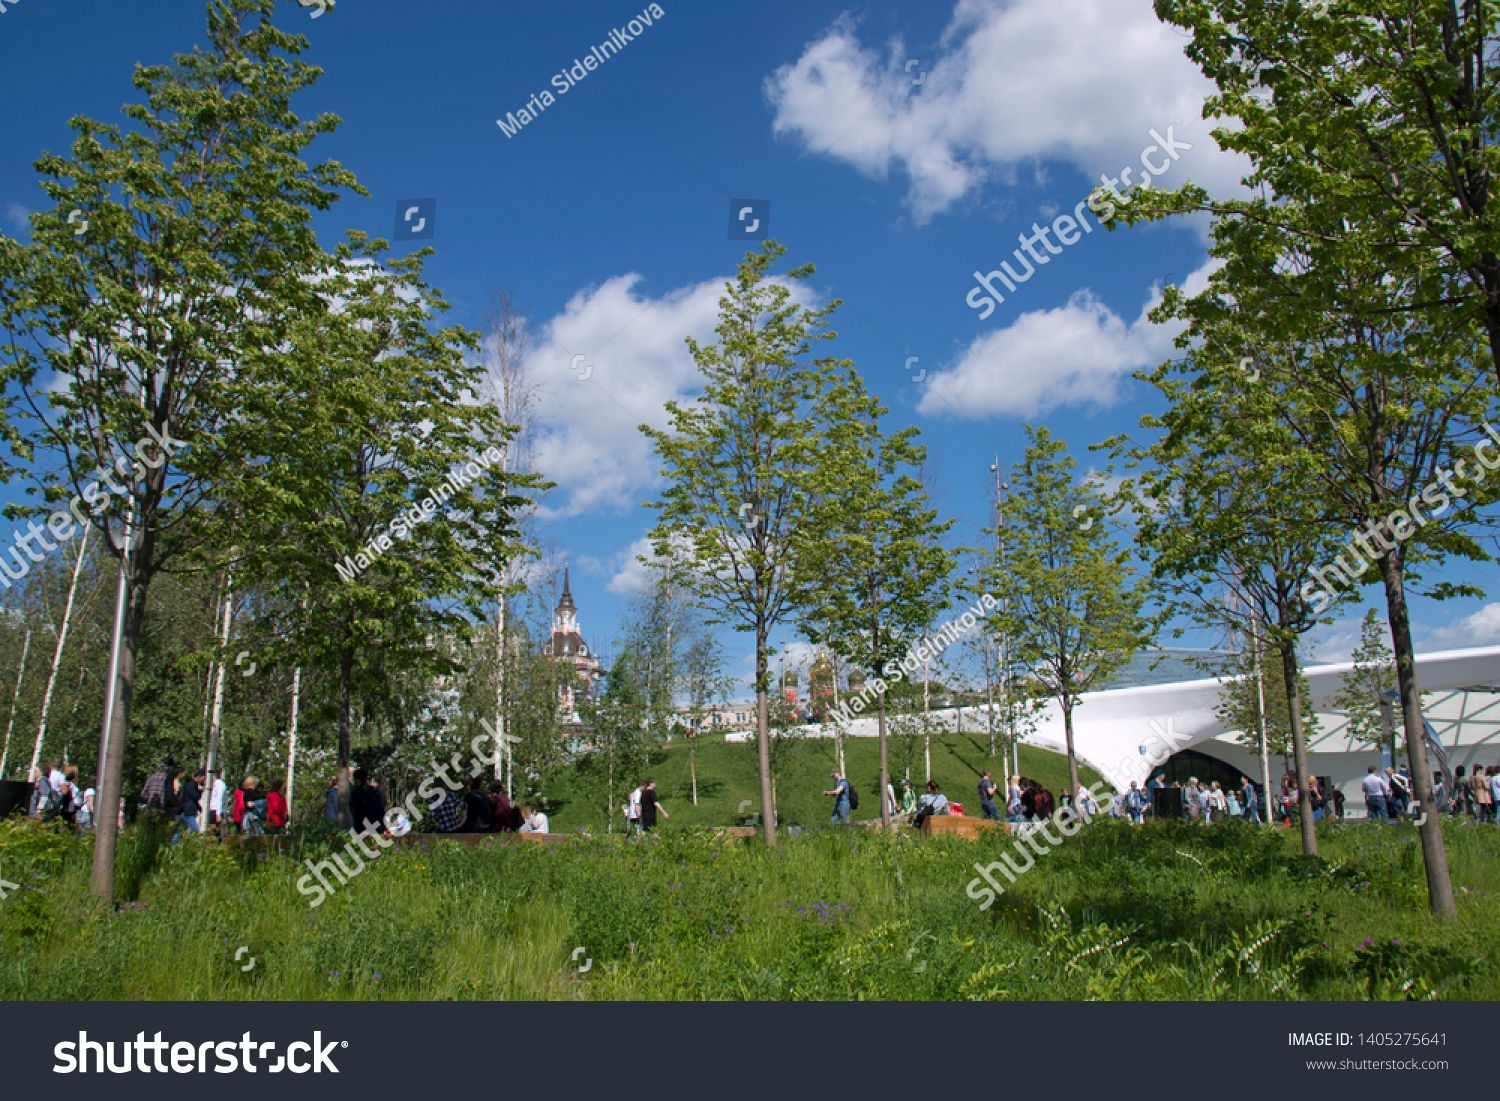 Zaryadye U002f Zariadye Park Moscow Russia May 19th 2019 View To Beautiful Nature Of Zaryadye Park In Moscow City Center Sit With Images Park Beautiful Nature Nature